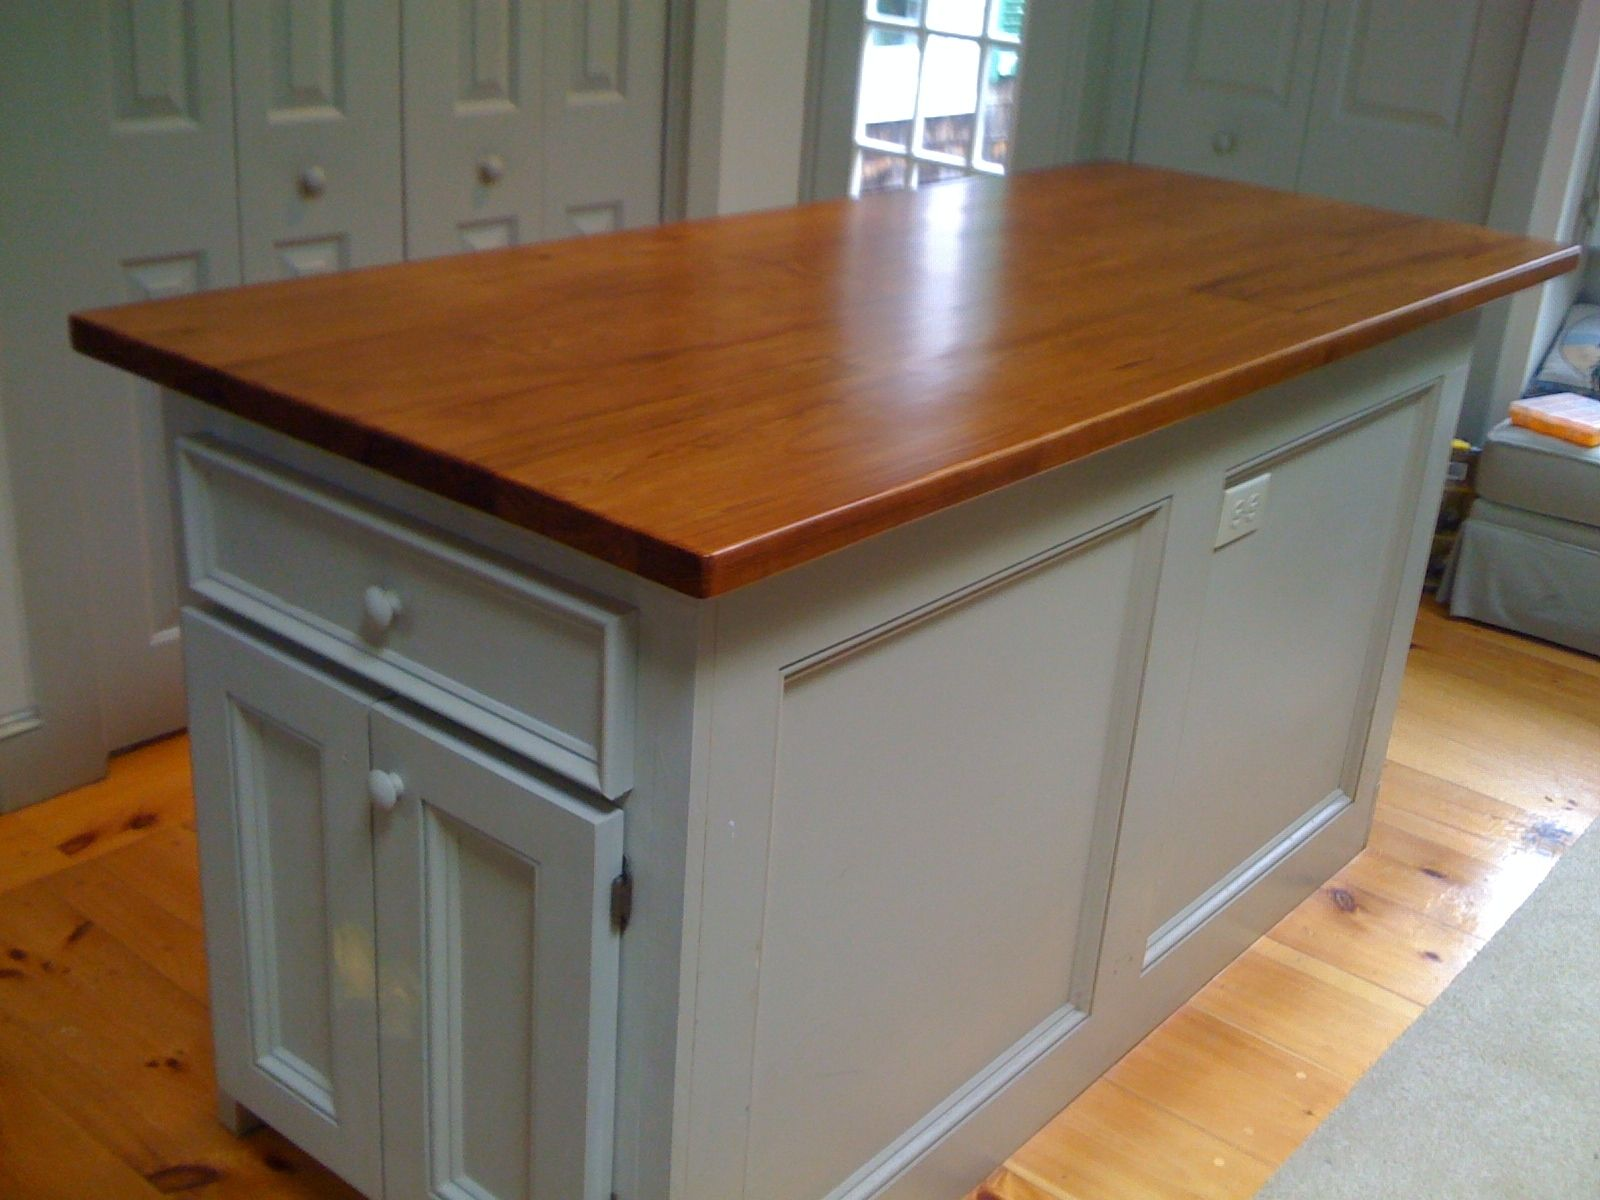 handmade custom kitchen island reclaimed wood top by cape spalted pecan custom wood countertops butcher block